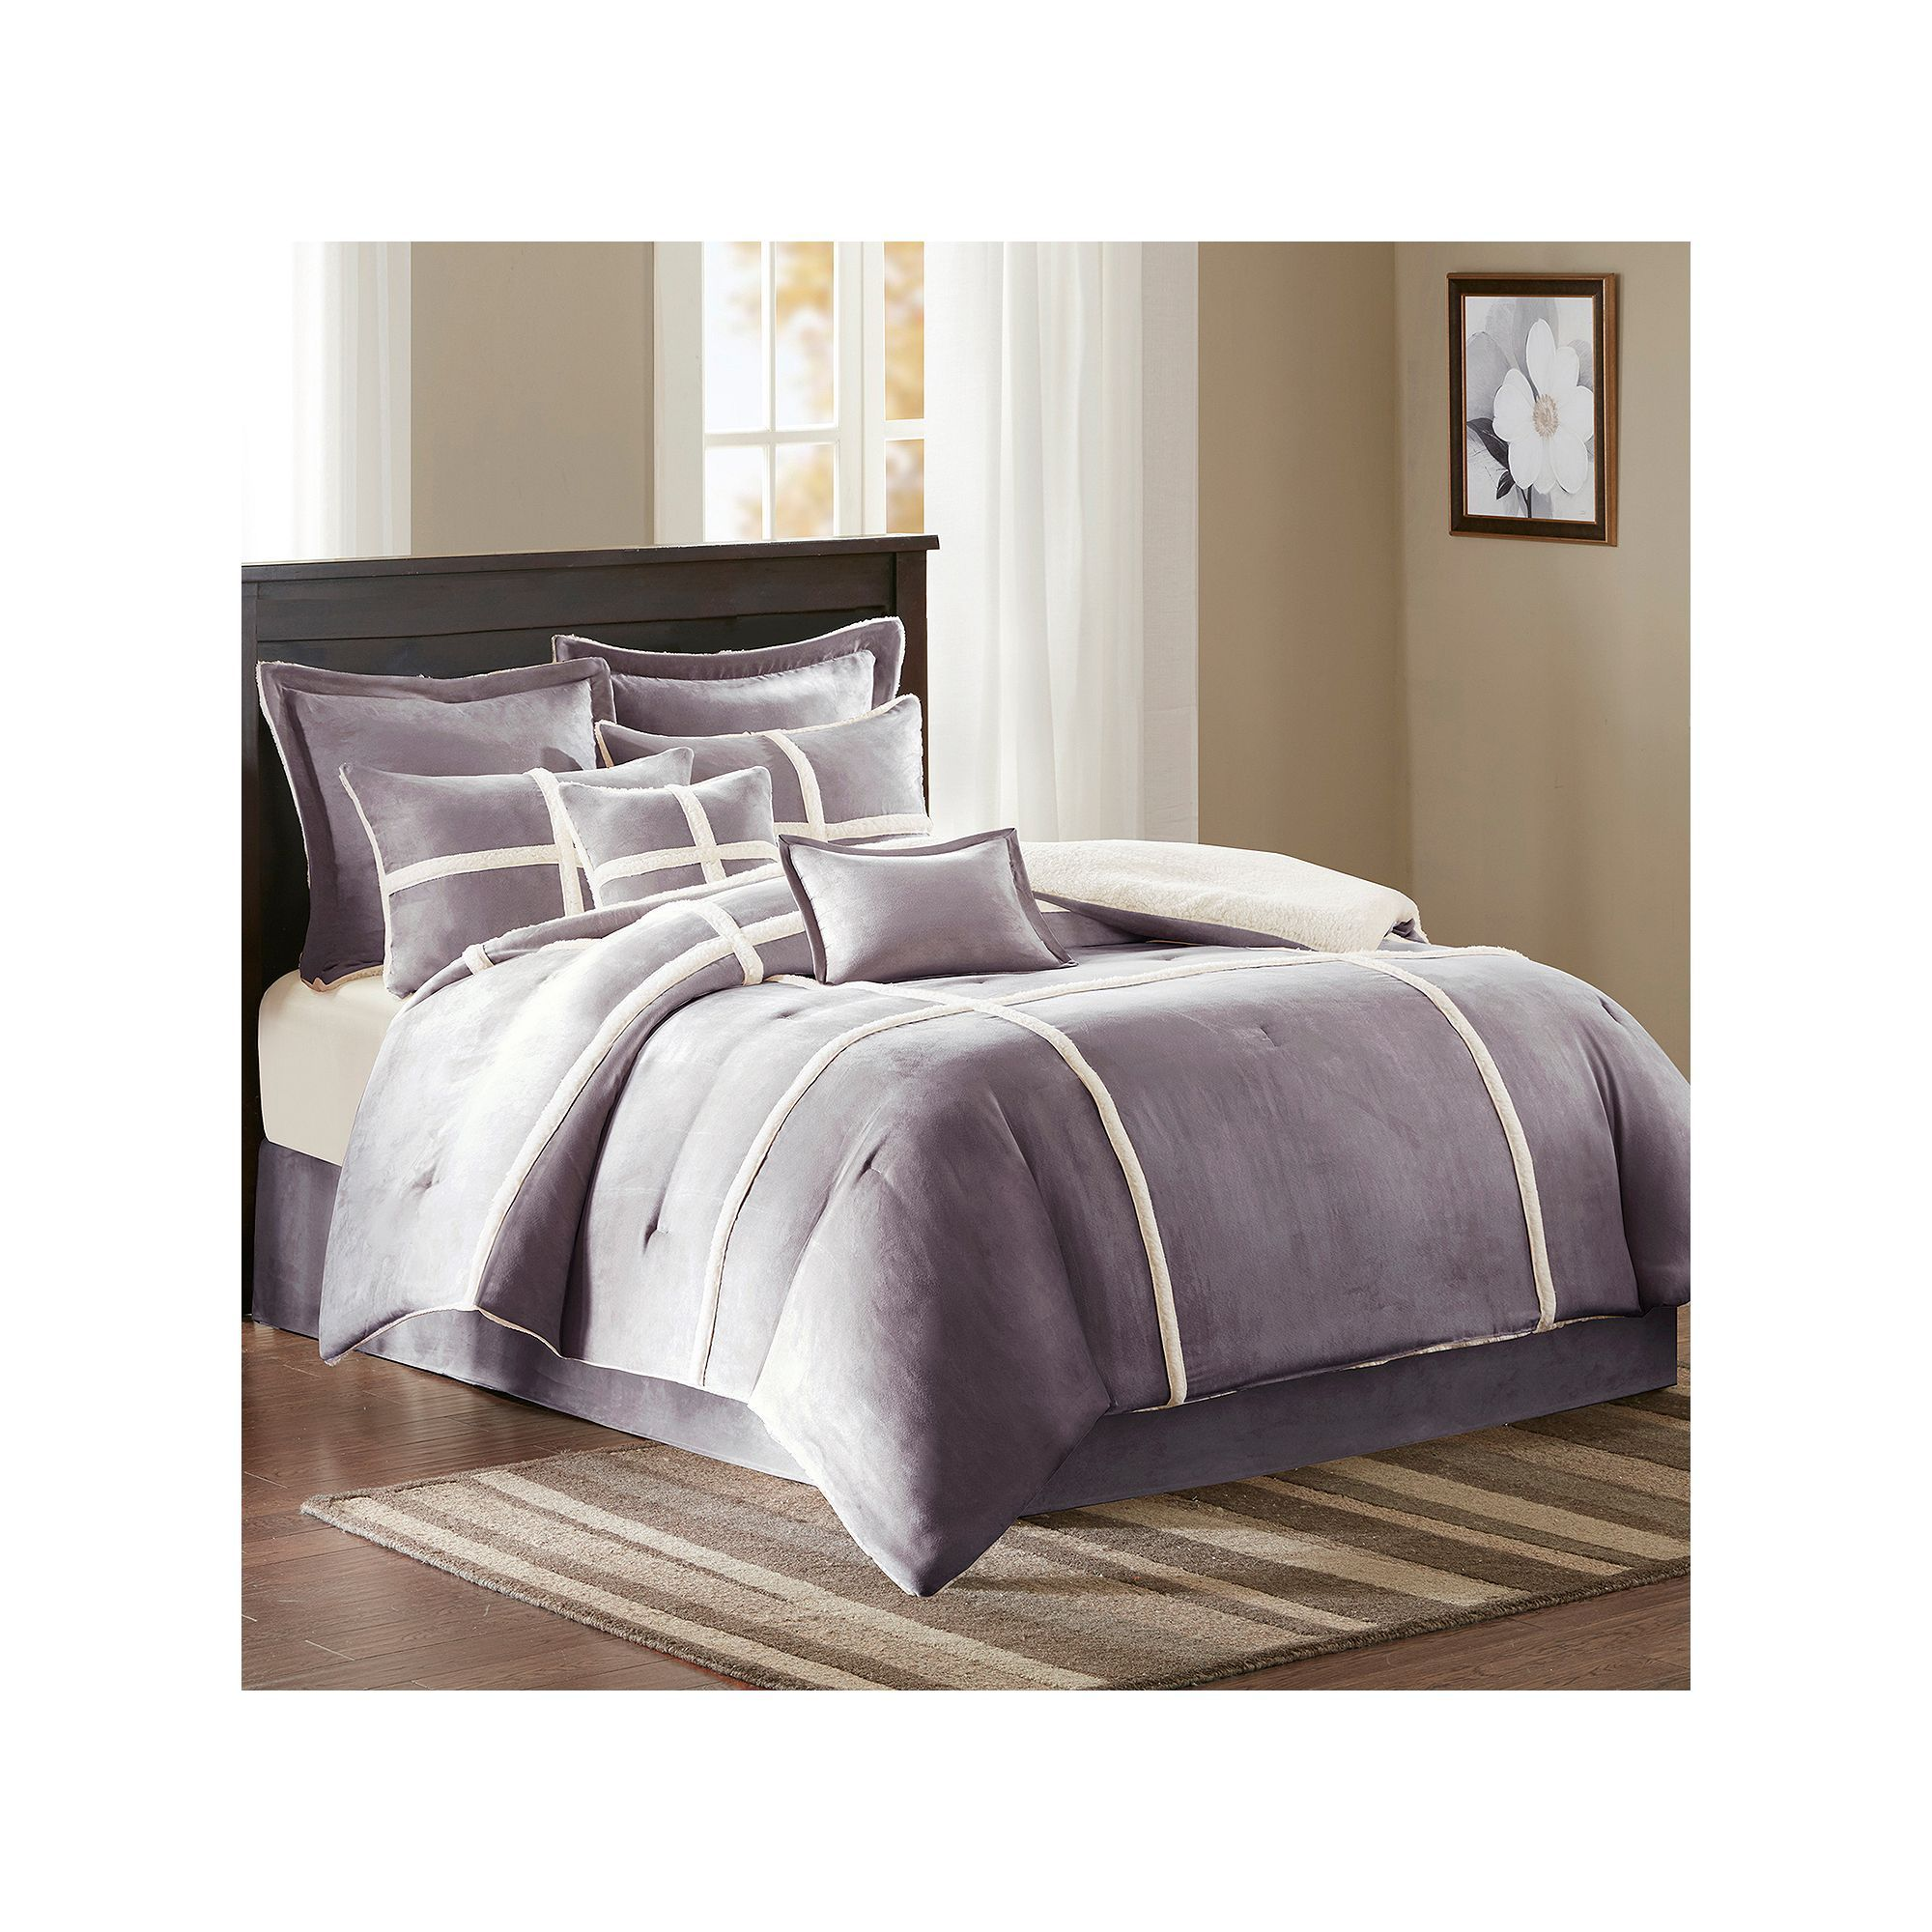 faux sets king navy queen set micro blue suede plush microsuede brown comforter chic piece lined decoration bedding home